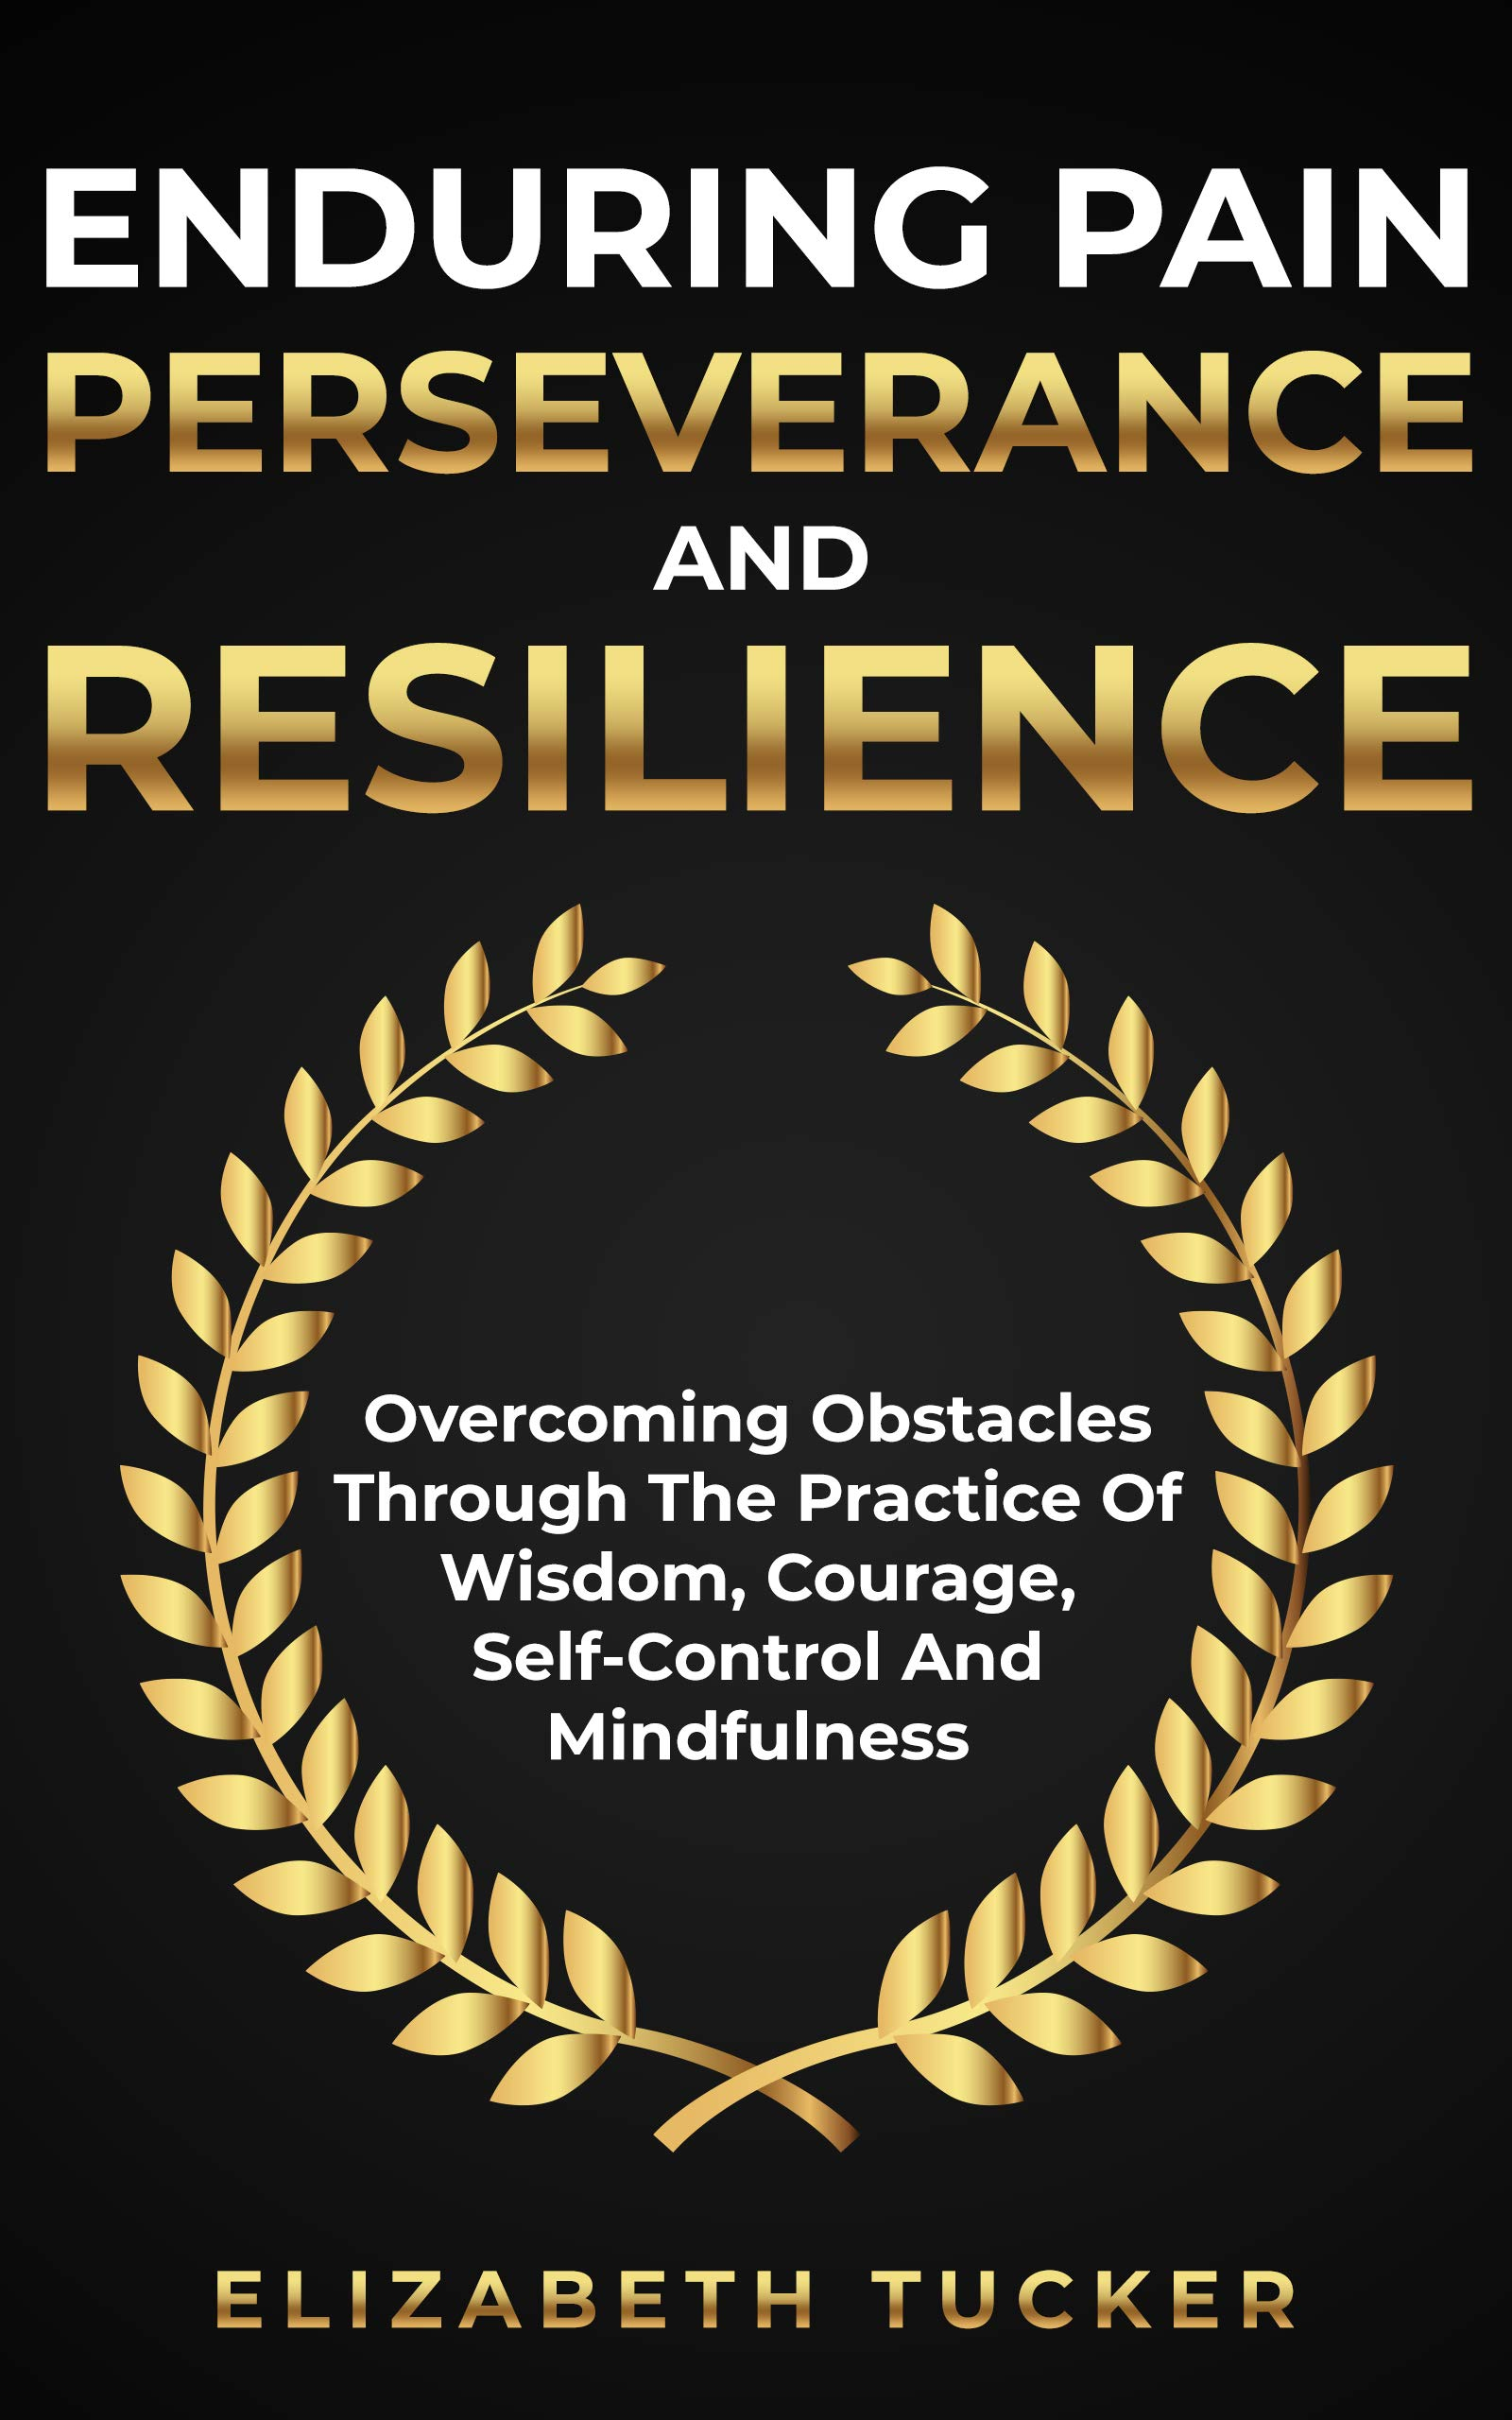 Enduring Pain Perseverance And Resilience: Overcoming Obstacles Through The Practice Of Wisdom, Courage, Self-Control And Mindfulness